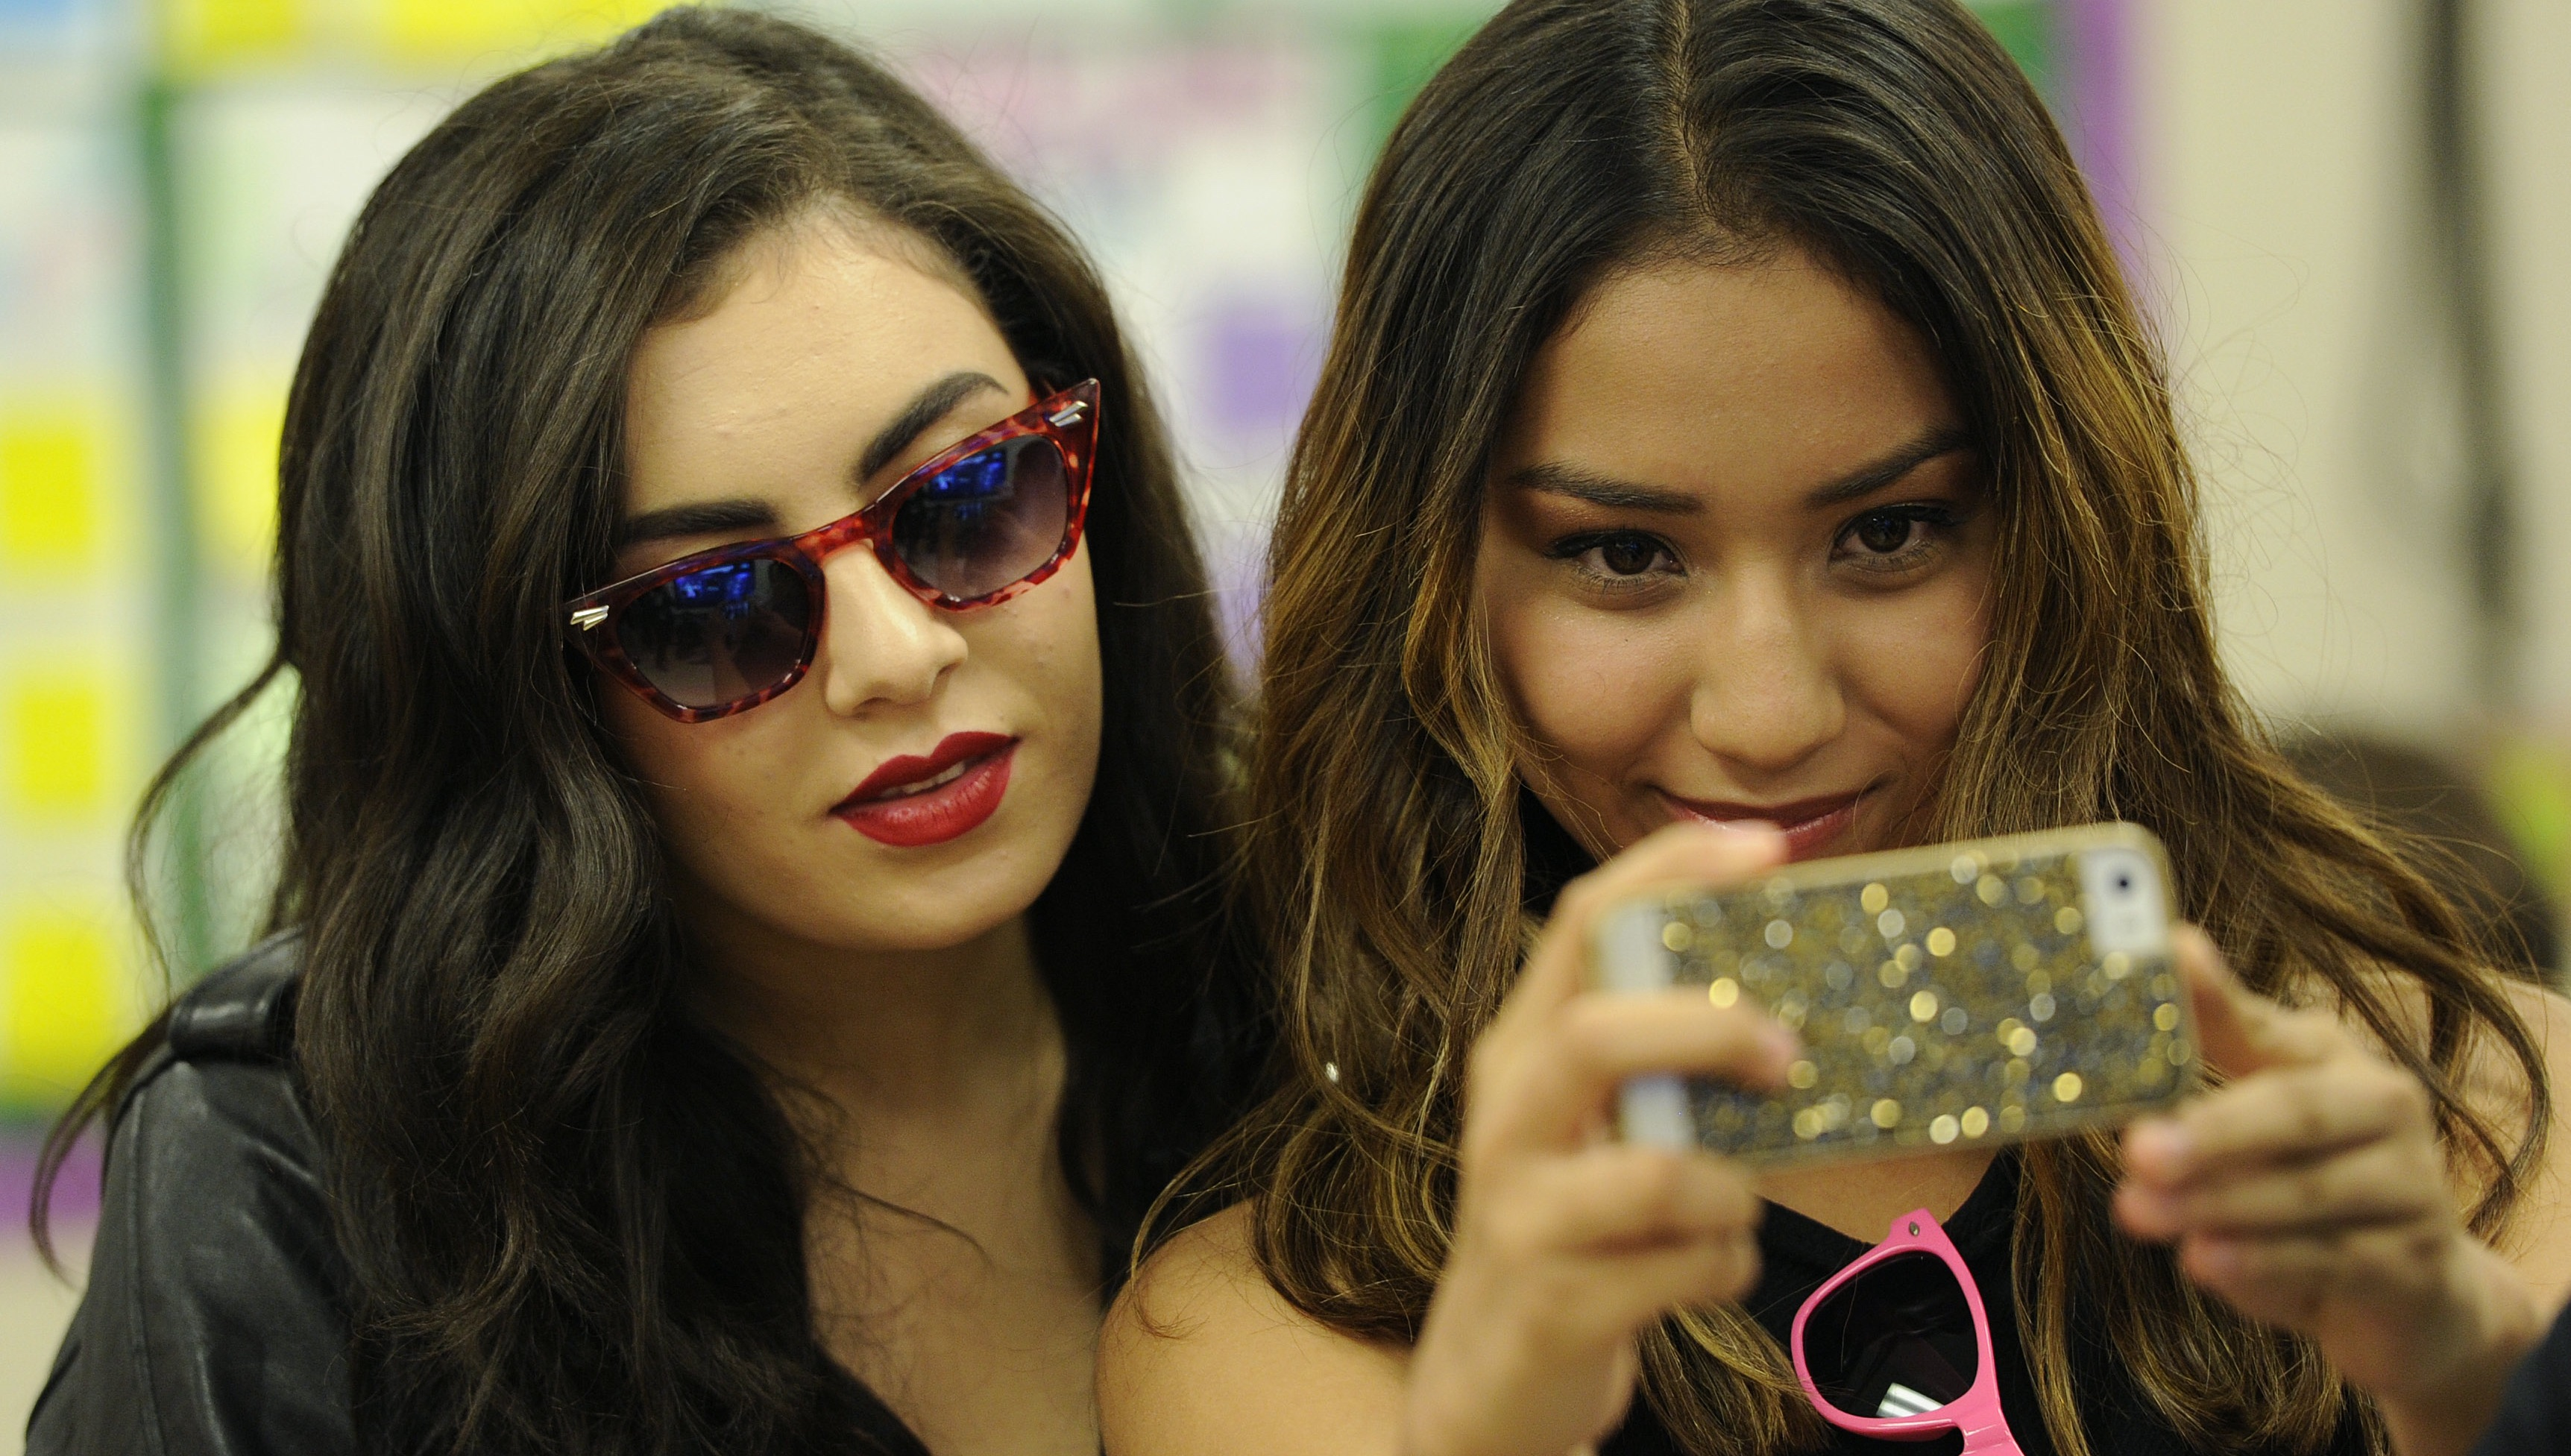 Singer Charli XCX, left, poses for a photo with Aspire Pacific Academy senior Laura Garcia during the Just Dance Homecoming at the academy on Wednesday, Oct. 22, 2014, in Huntington Park, Calif. The event celebrated the launch of the video game Just Dance 2015. (Photo by Chris Pizzello/Invision/AP)